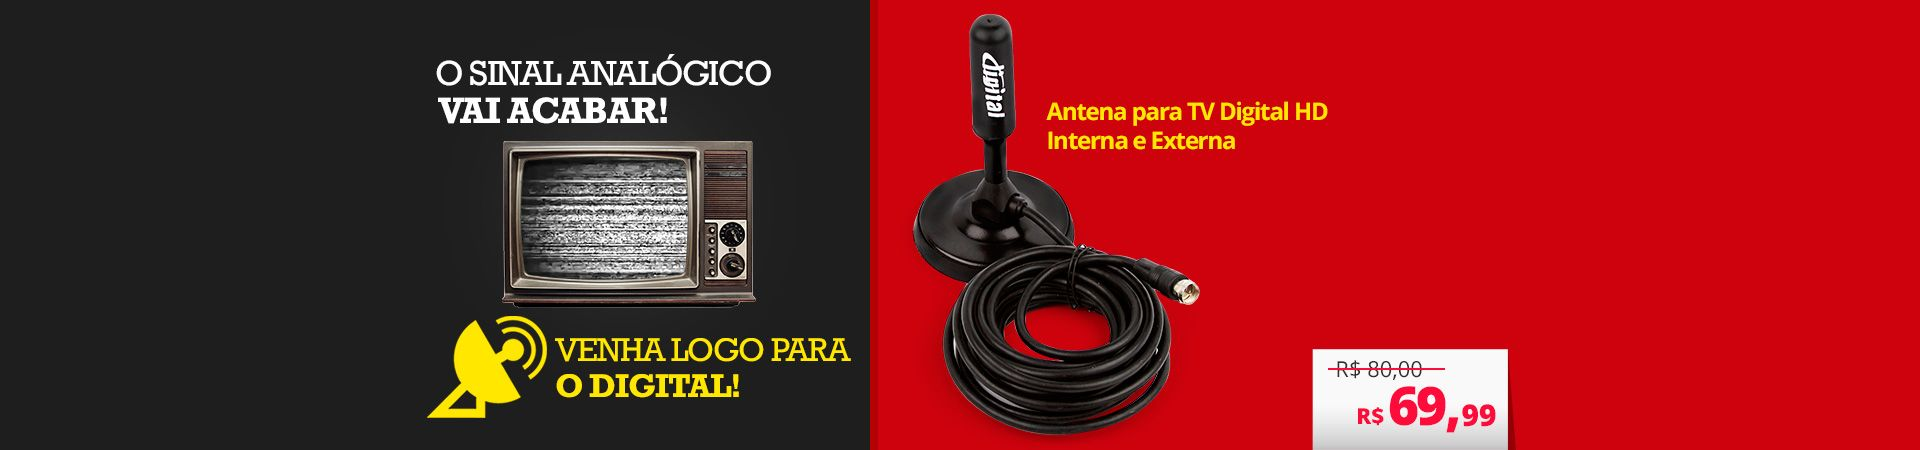 Antena Digital Interna e Externa